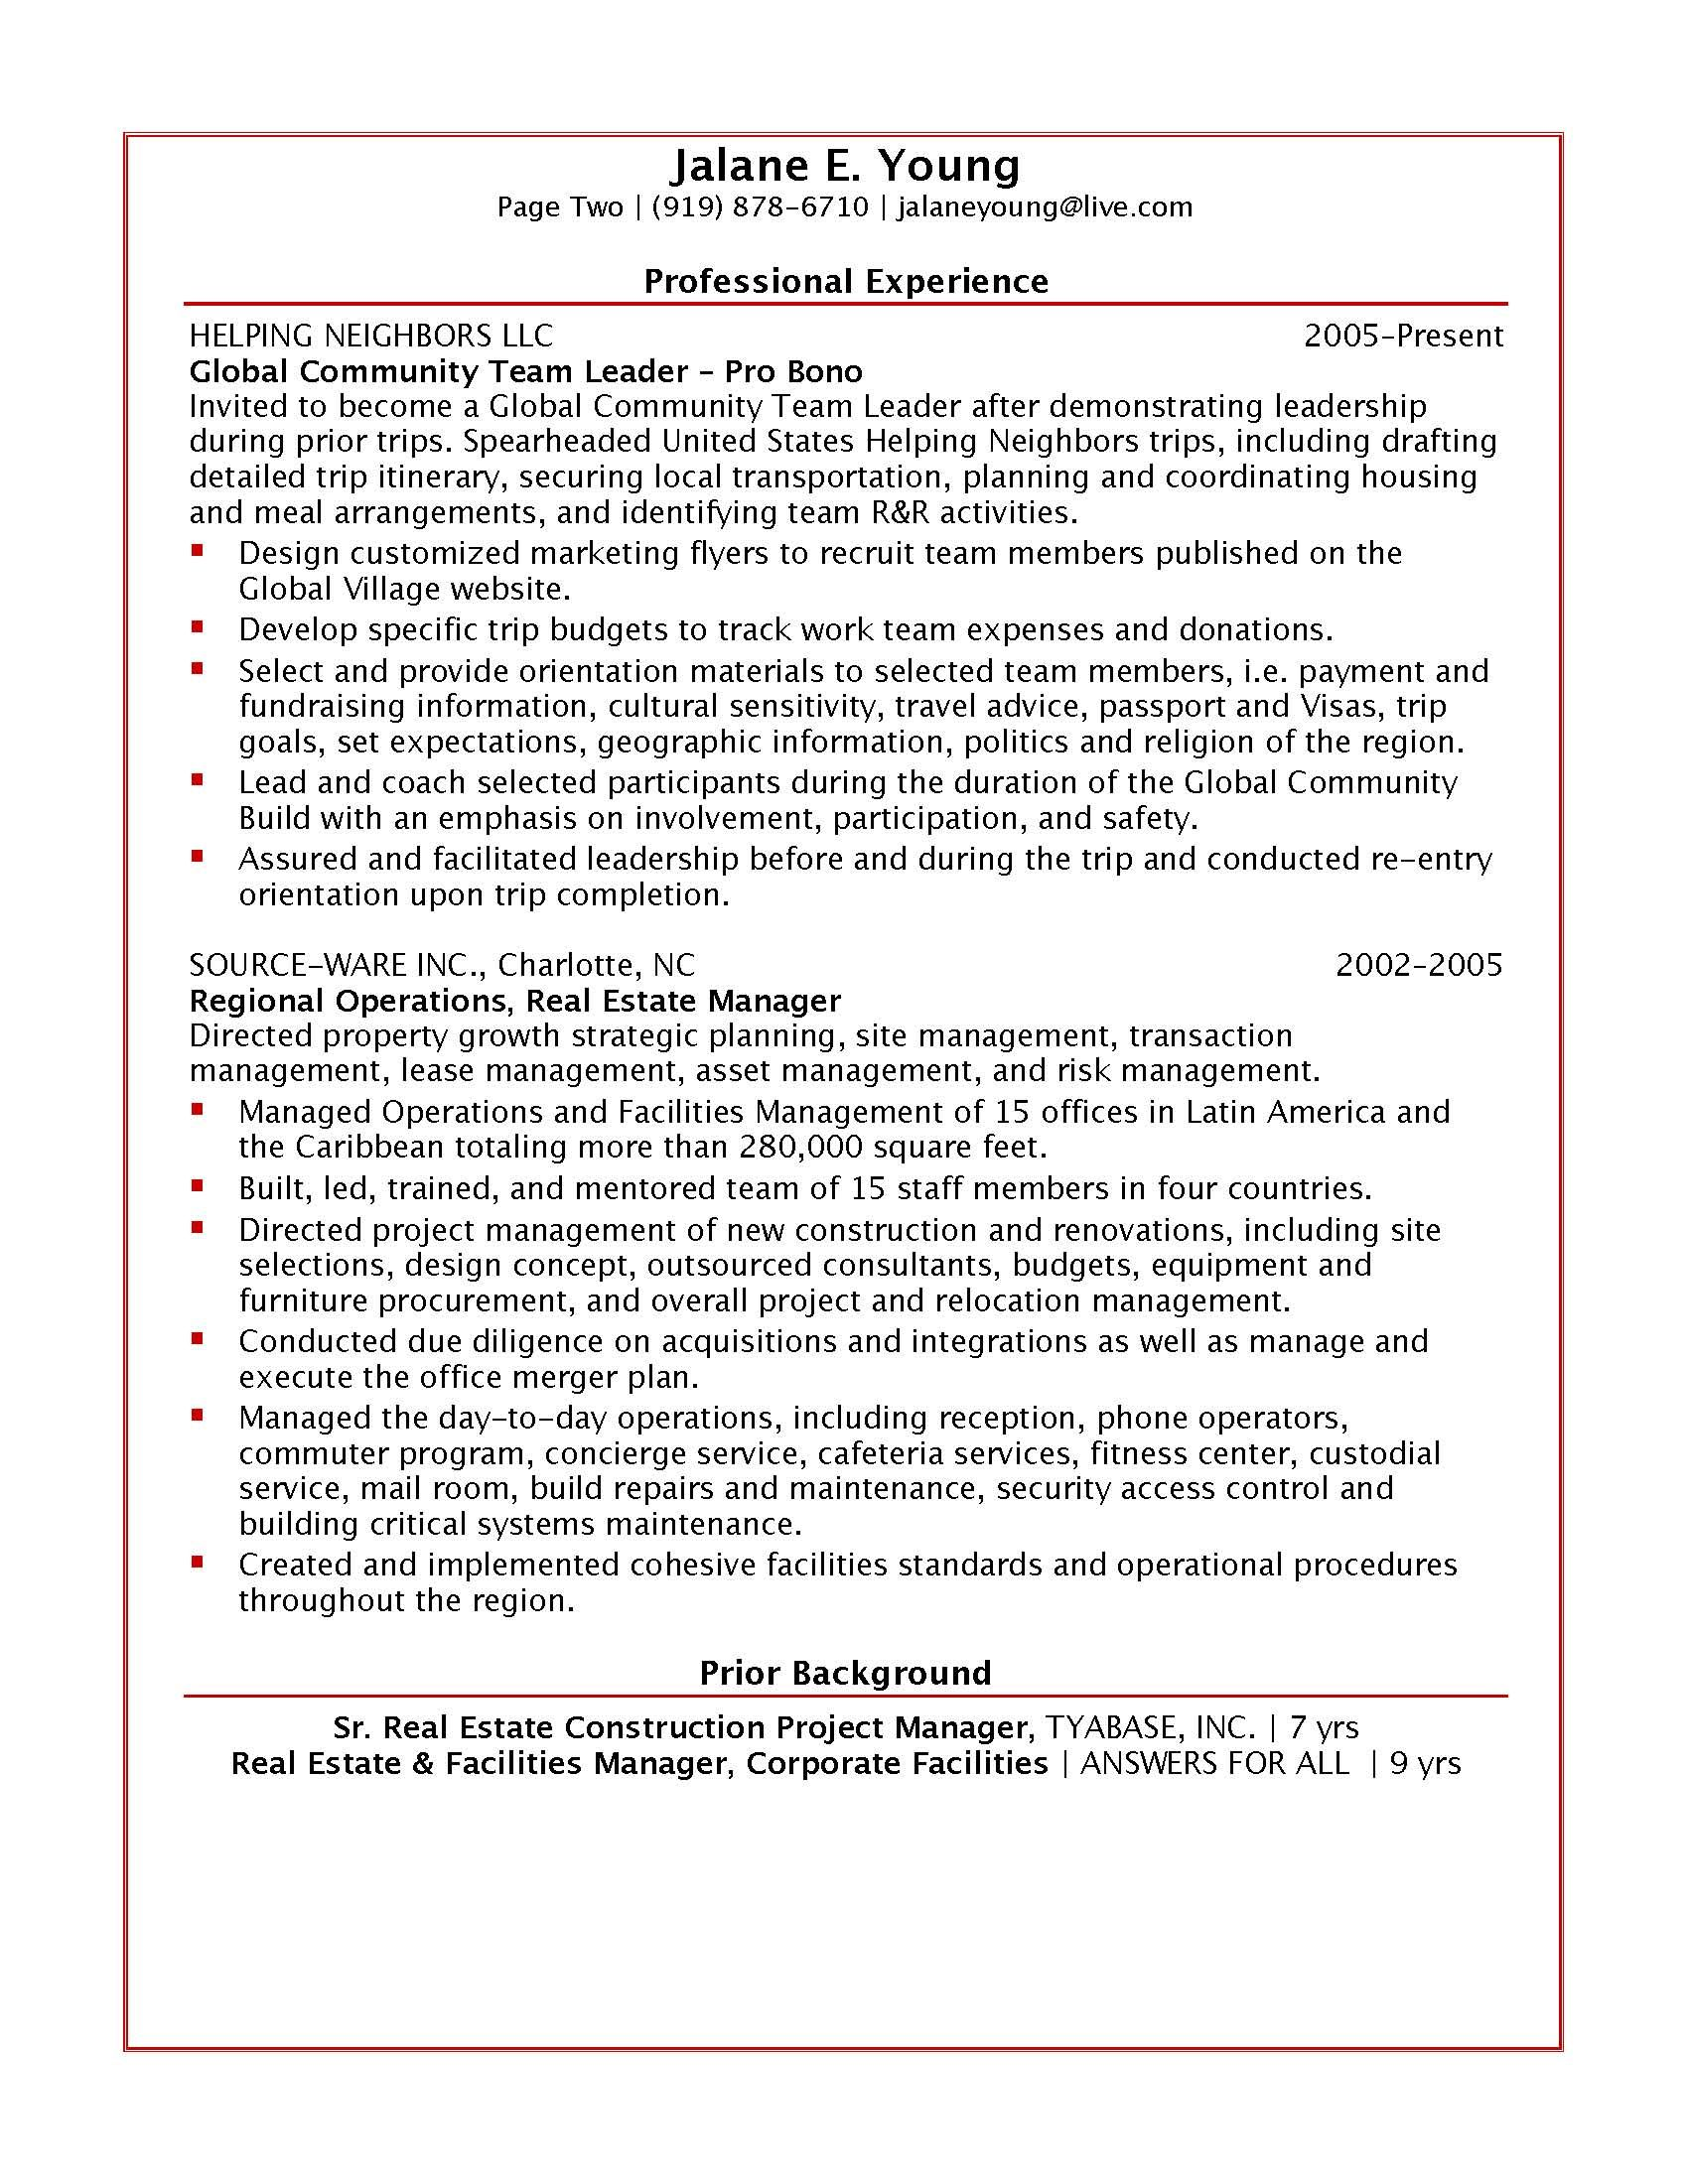 sample resume images sample resumessample resumes cover letter office manager jobs · sample resume images sample resumessample resumes cover letter examples